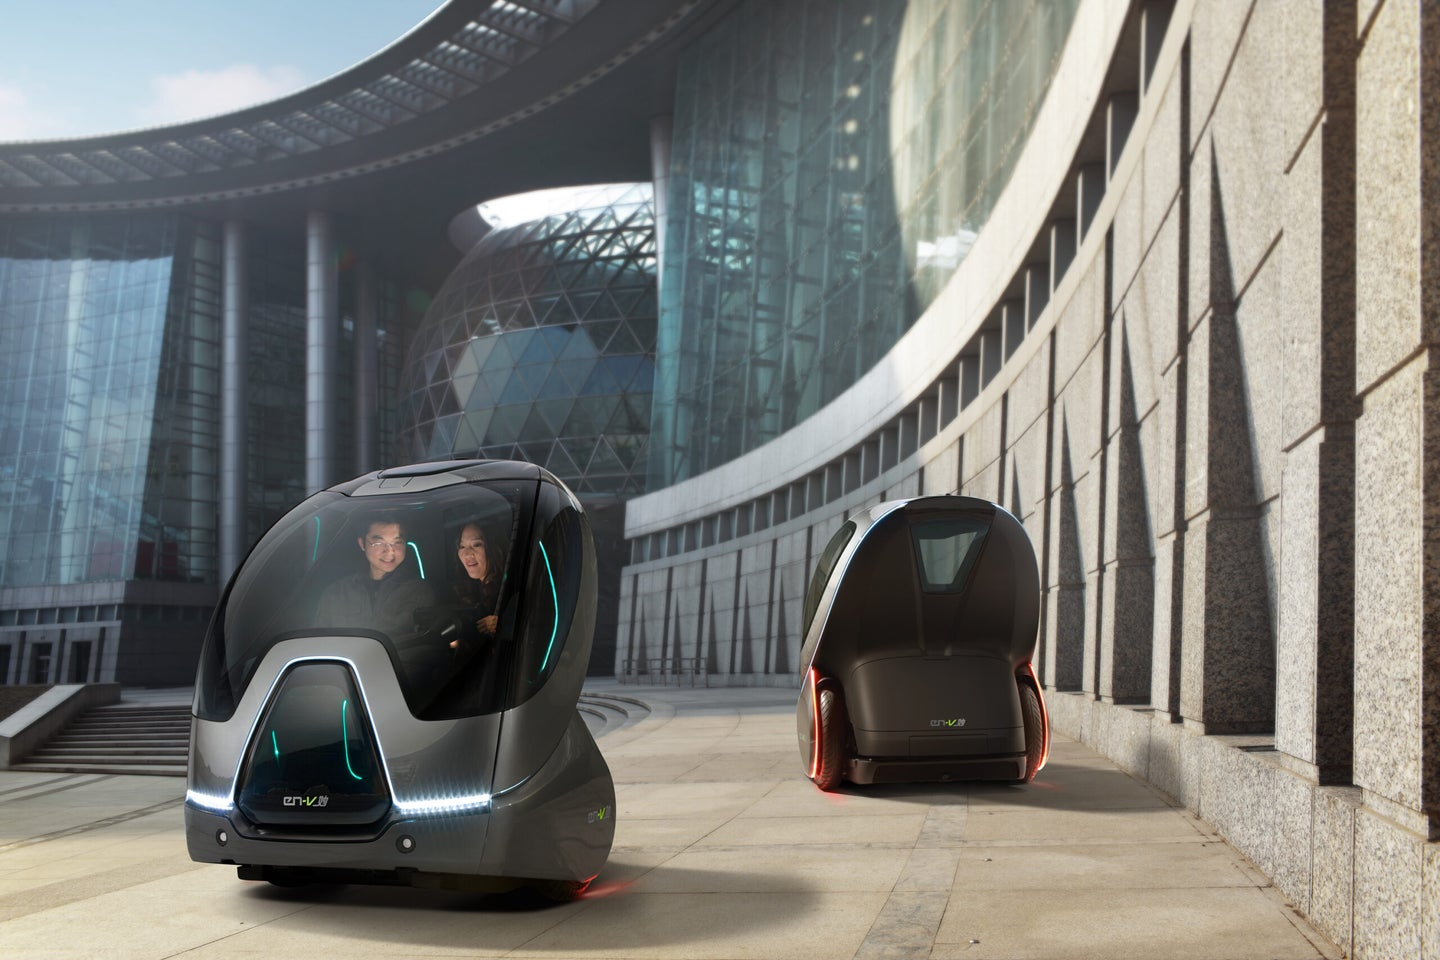 GM Presents Your Future Two-Wheeled Electric Ride for the City